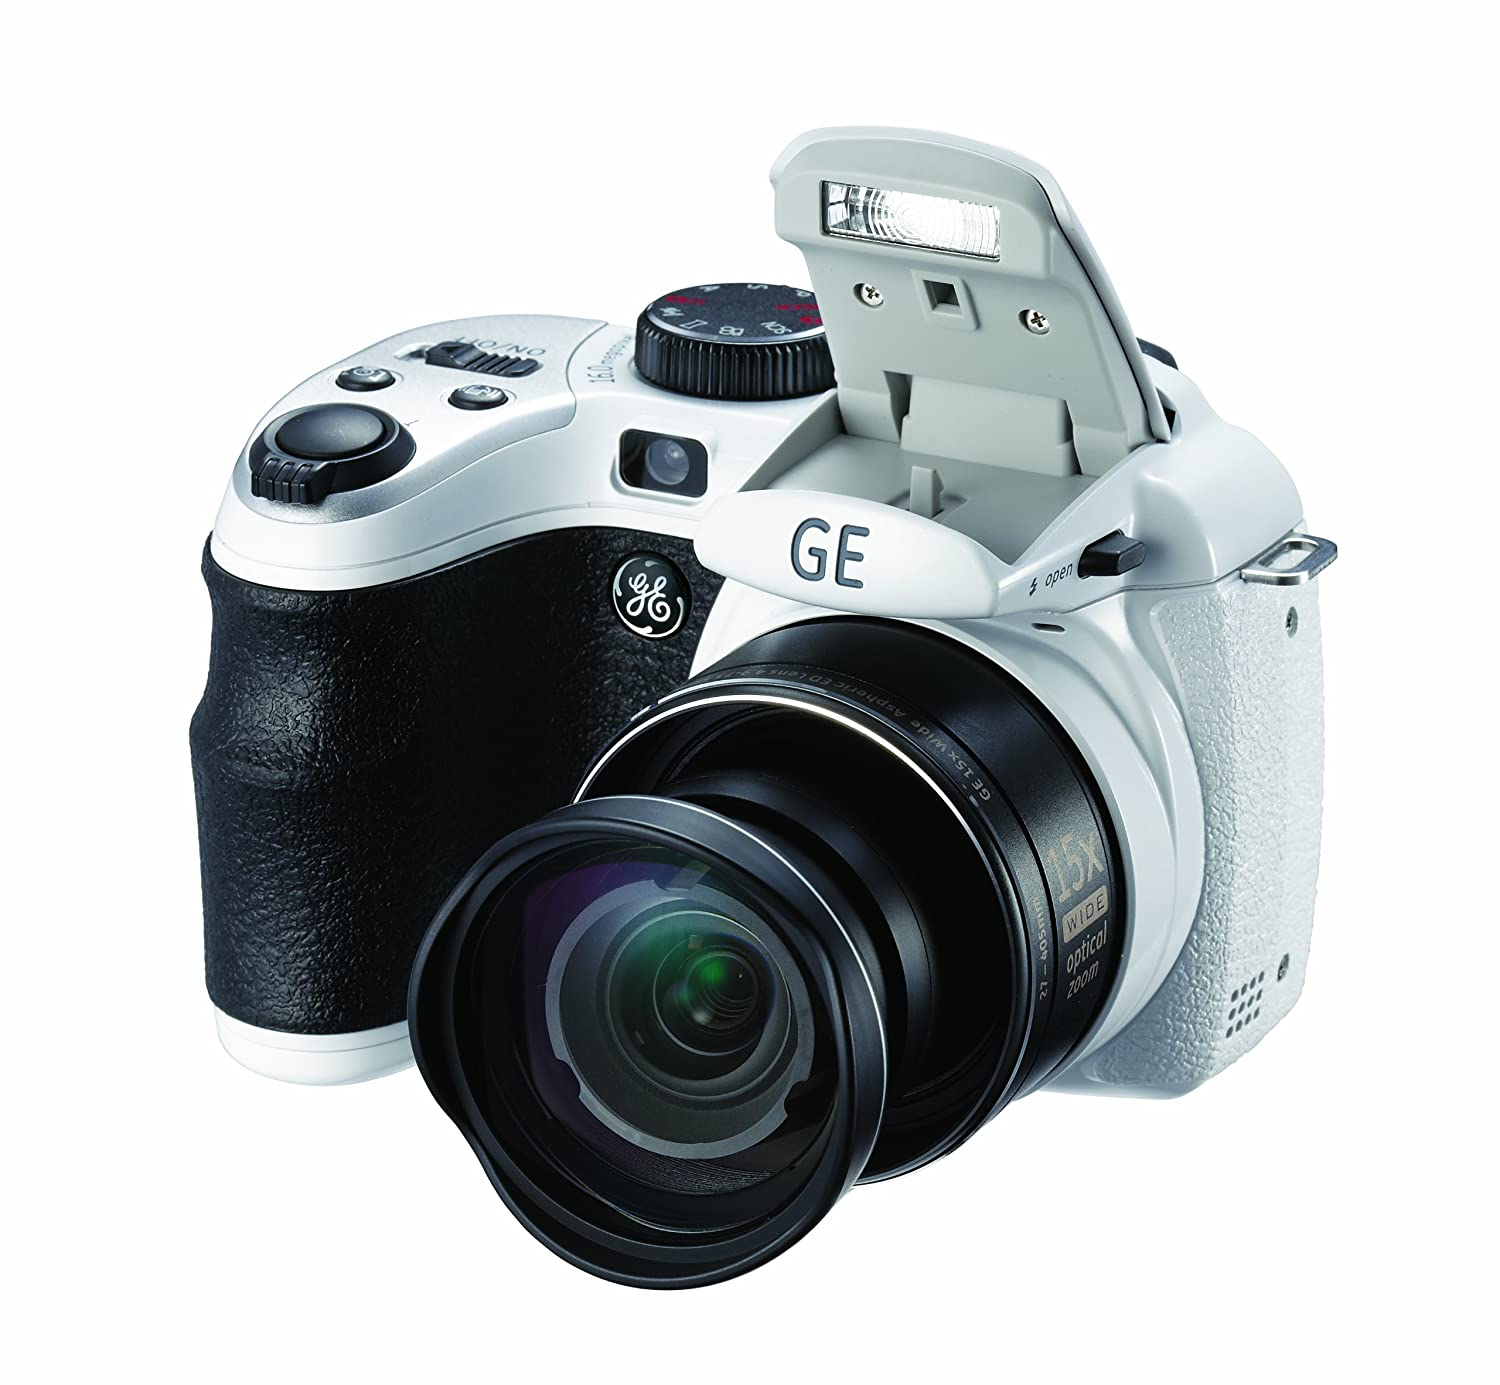 Amazon.com : GE Power Pro X500-WH 16 MP with 15 x Optical Zoom Digital  Camera, White (OLD MODEL) : Point And Shoot Digital Cameras : Camera & Photo